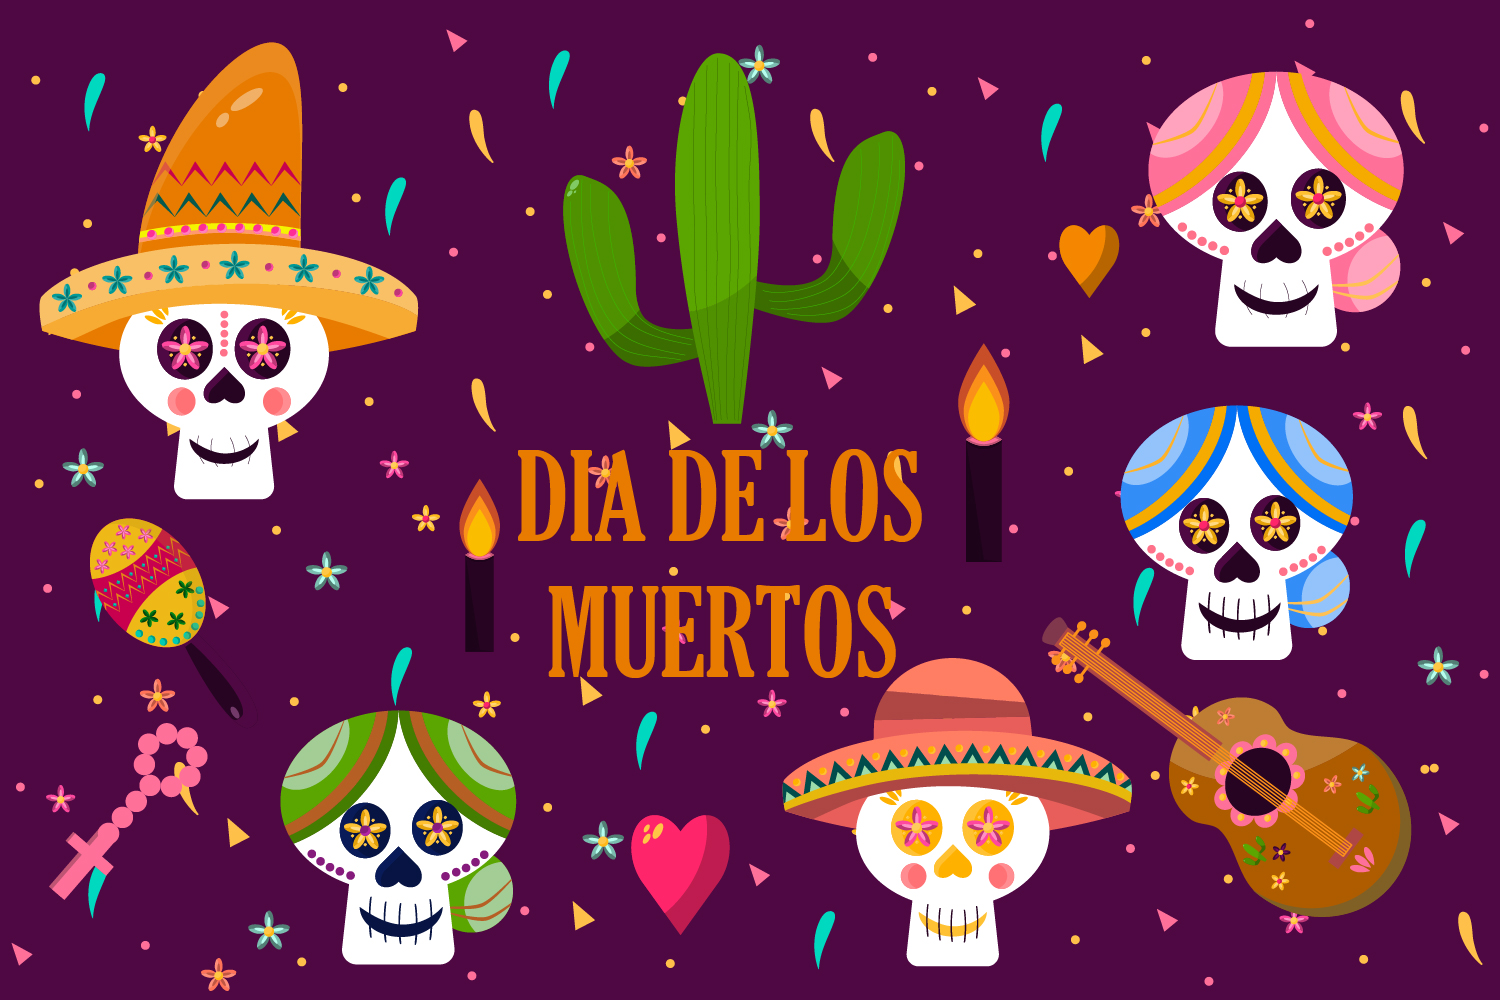 Download Free Dia De Los Muertos Day Of The Dead Graphic By Igraphic Studio for Cricut Explore, Silhouette and other cutting machines.